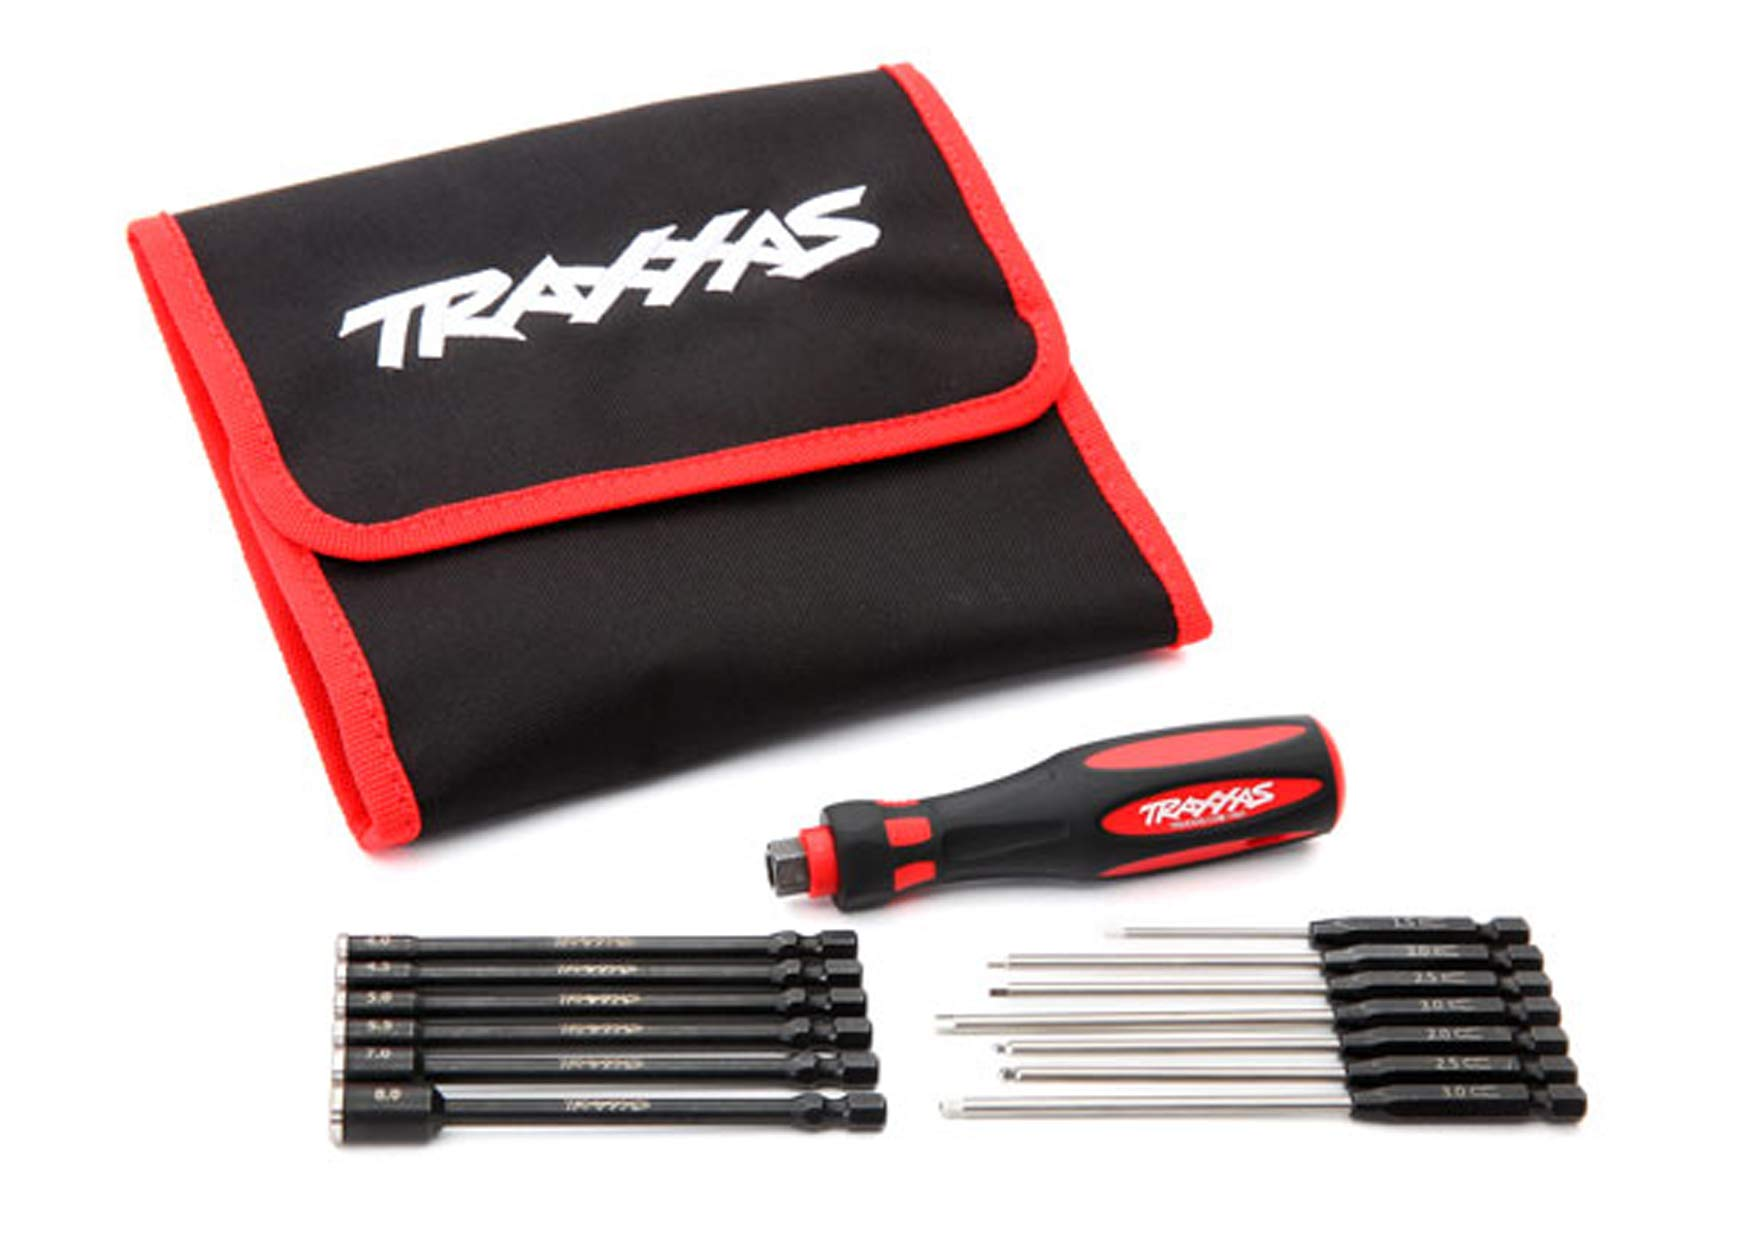 Traxxas 8710 Speed Bit Master Set, Hex and Nut Driver, 13-Piece by Traxxas